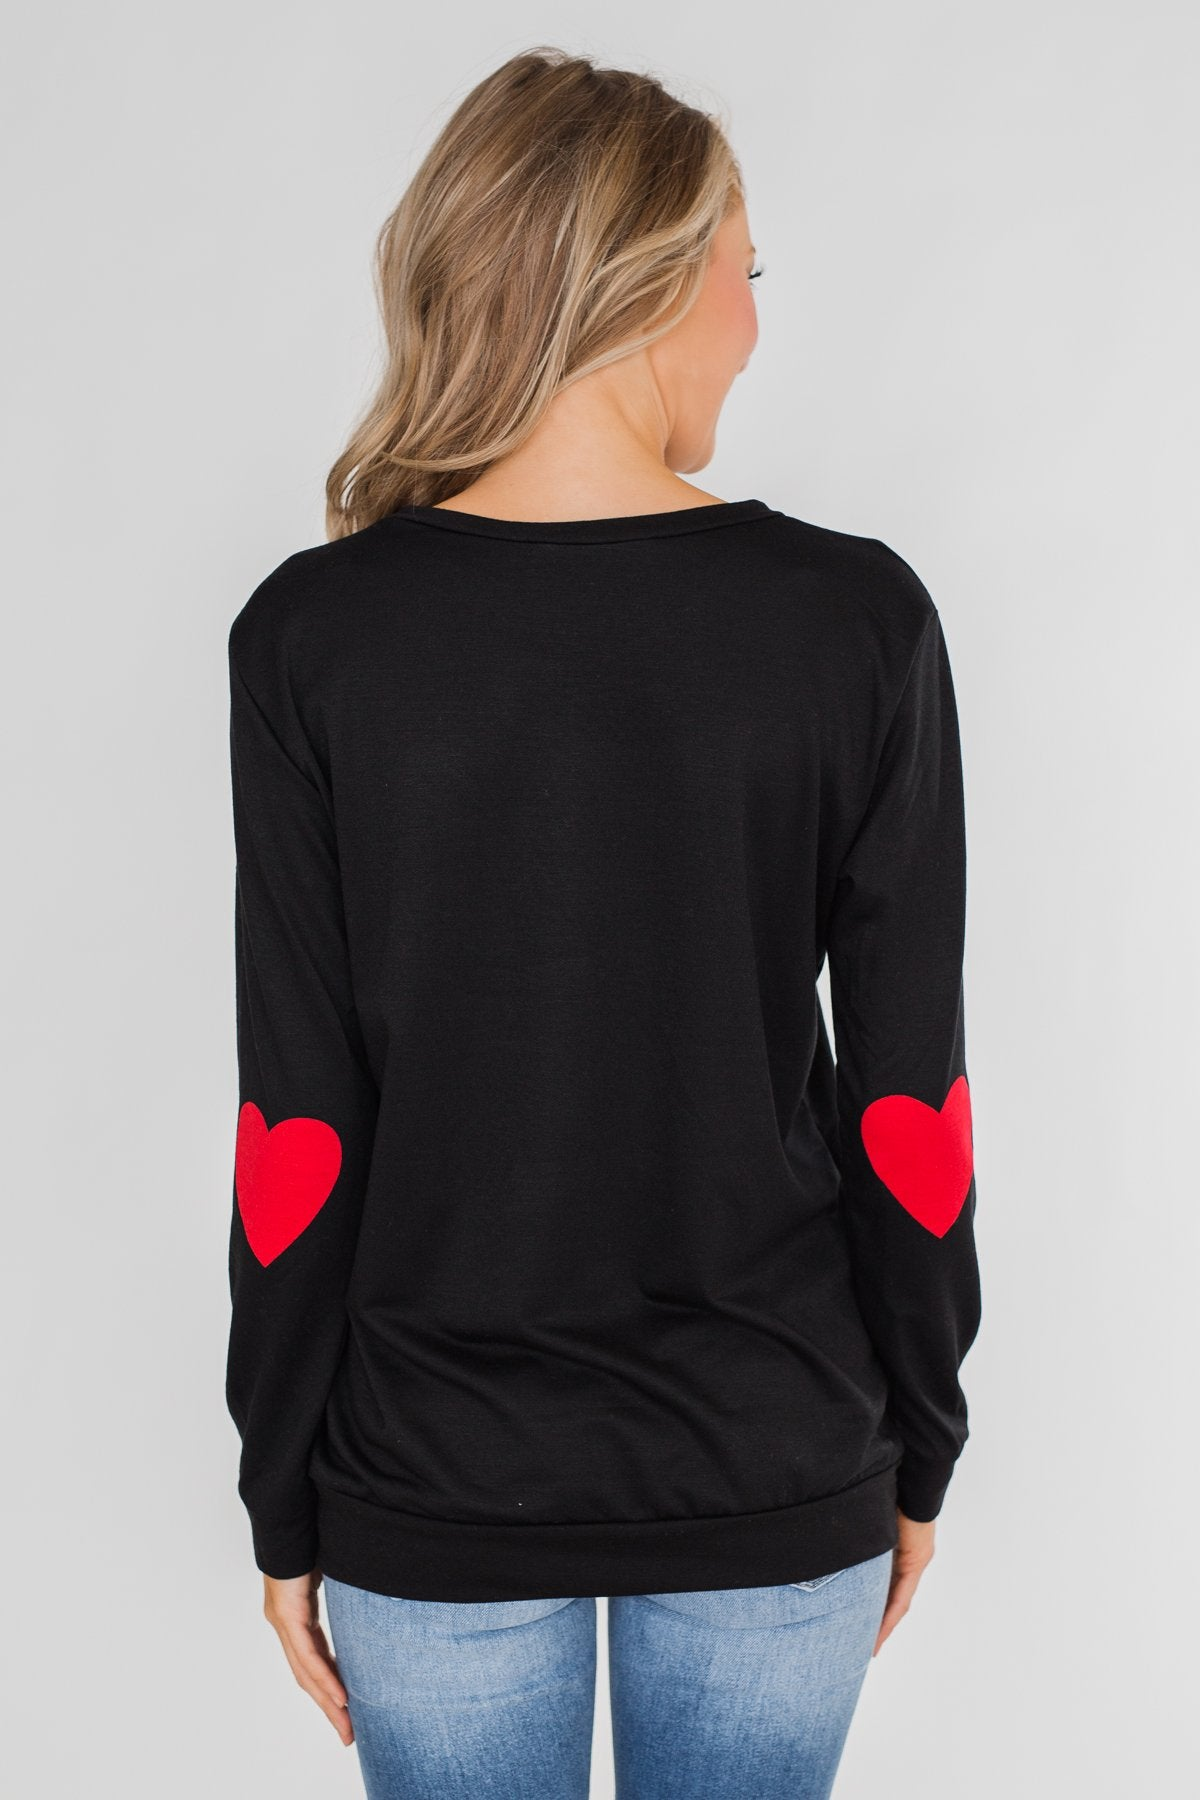 Struck By Love Heart Elbow Patch Top- Black